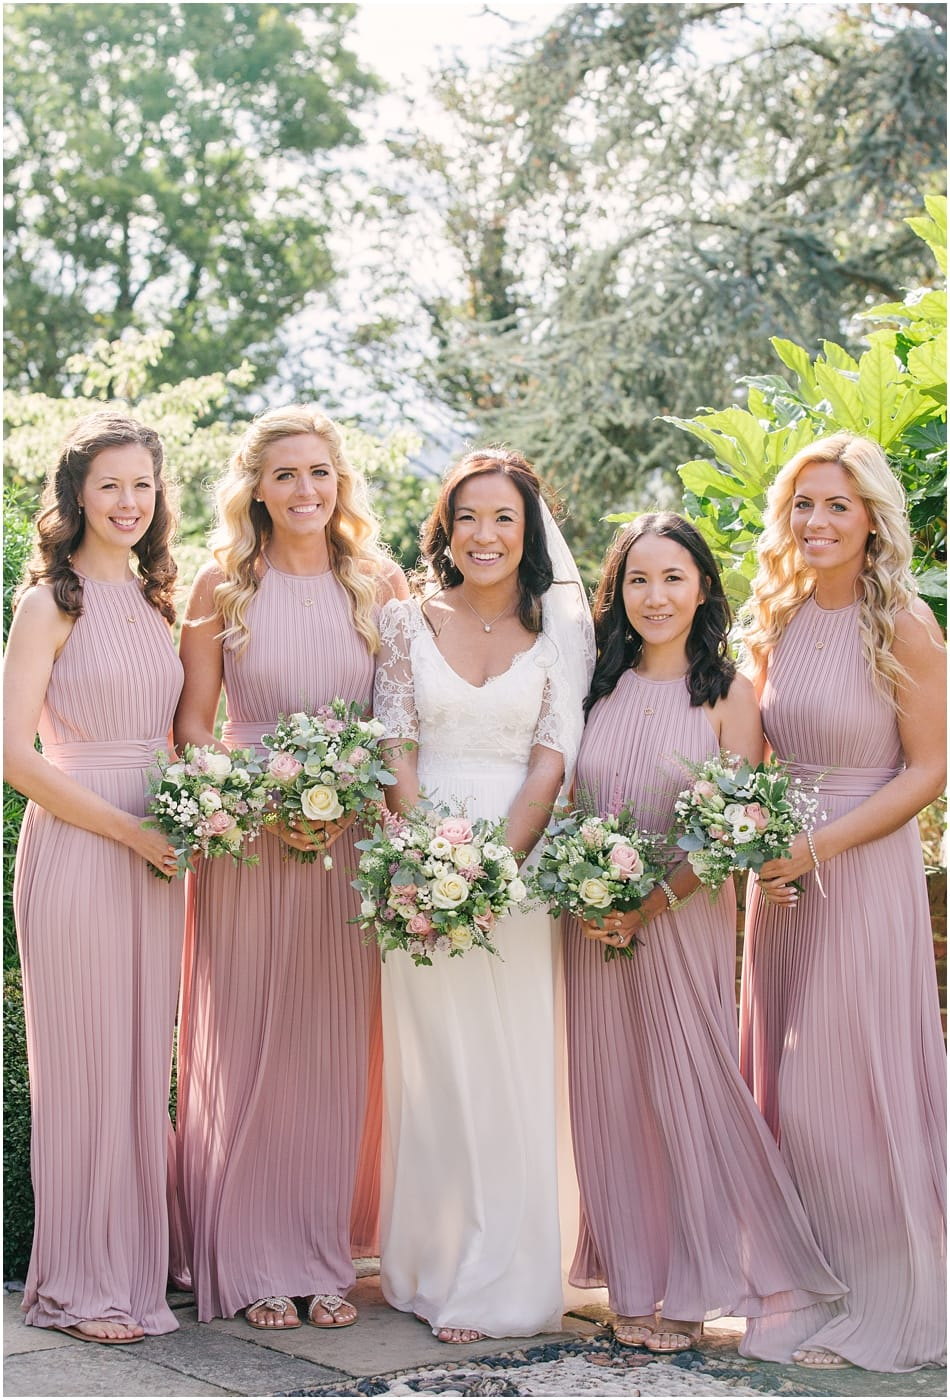 Gorcott Hall wedding photography; Bride and Bridesmaids wearing Dana Bolton and blush pink dresses